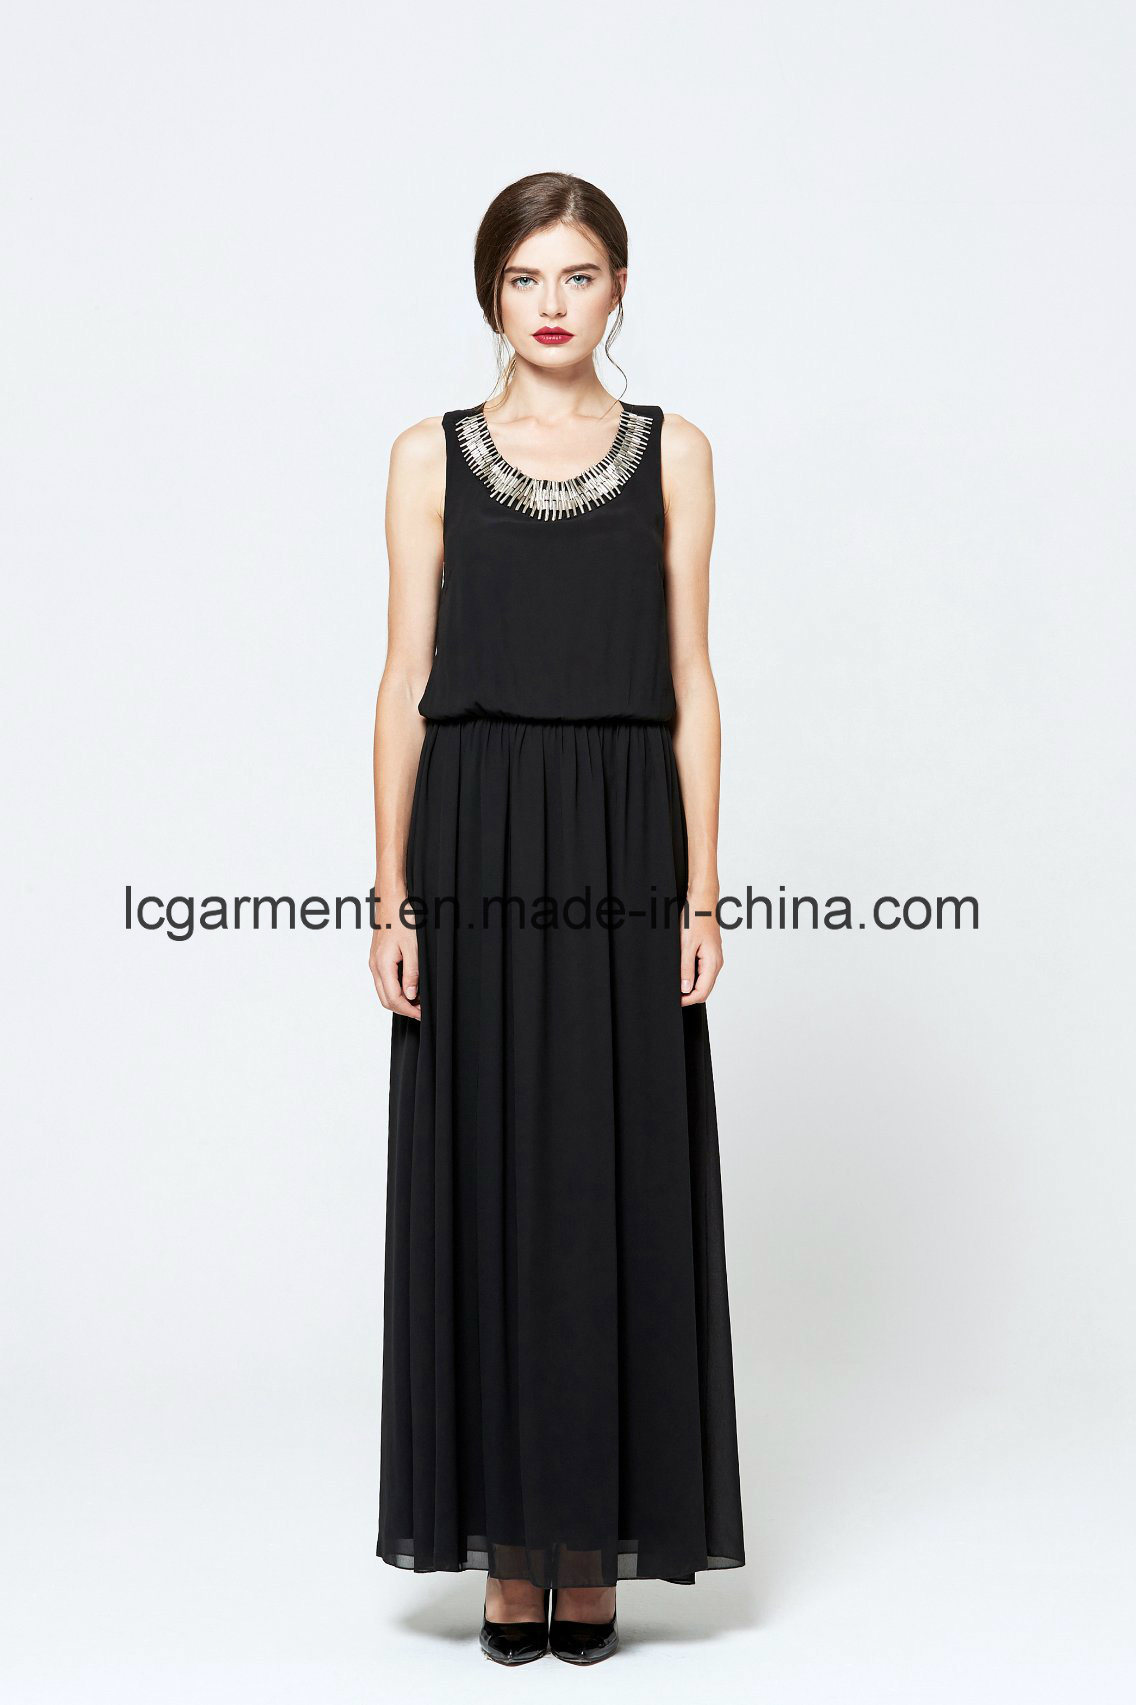 Black Chiffon Woman Dress Sleeveless Halter Neck Backless Maxi Latest Dress